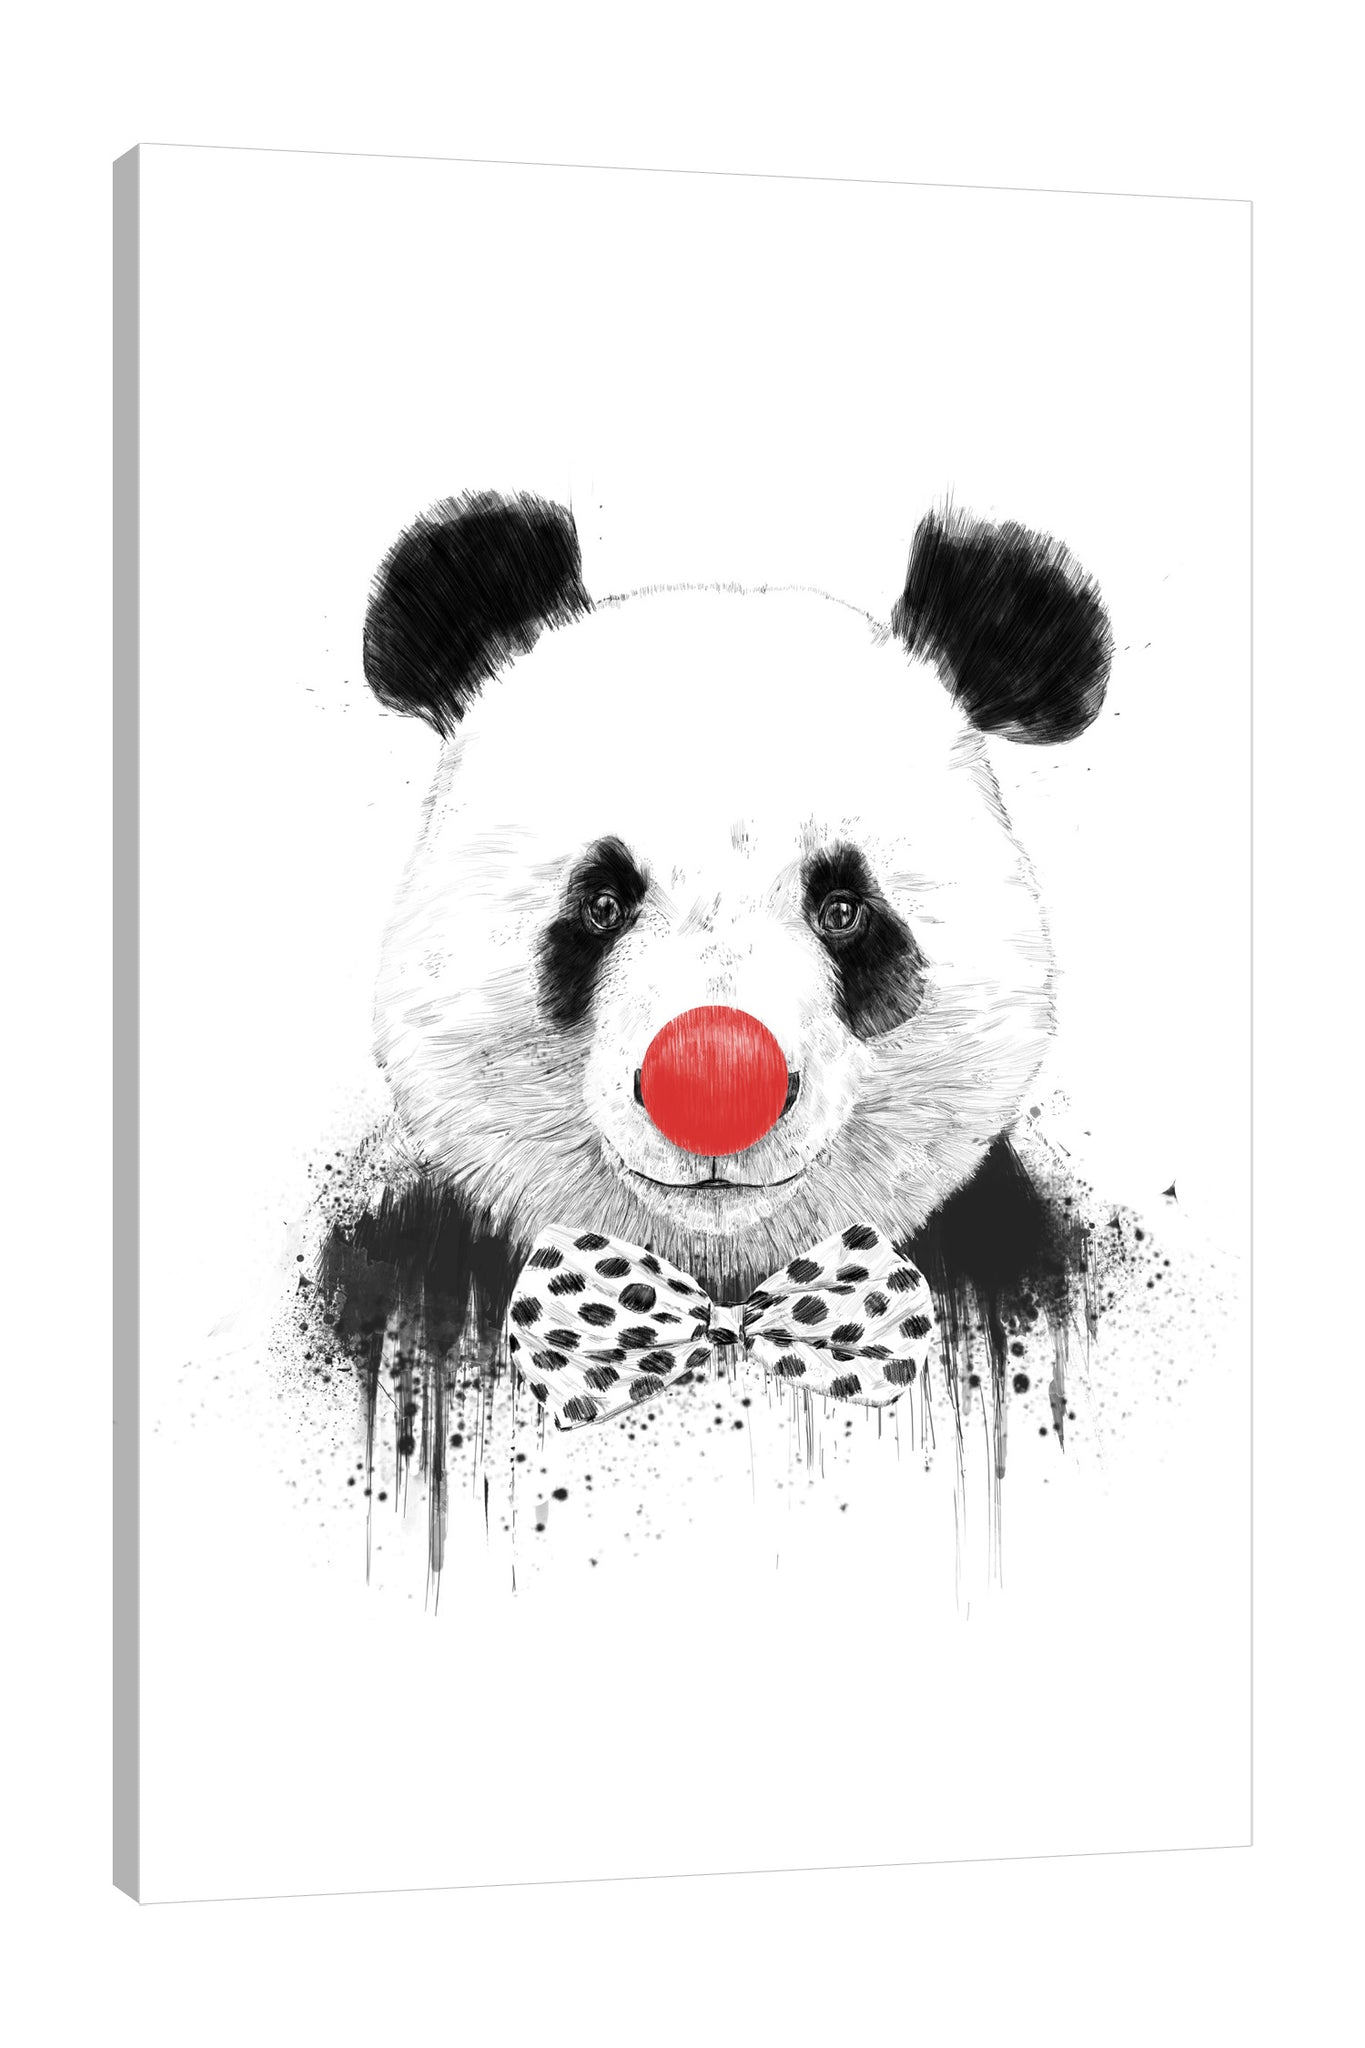 Balazs-Solti,Modern & Contemporary,Animals,Entertainment,animals,animal,panda,pandas,clown,clowns,nose balls,nose ball,paint drips,paint drip,drips,drip,bow,bows,polka dots,polka dot,dots,dot,black and white,Mist Gray,Tan Orange,Black,White